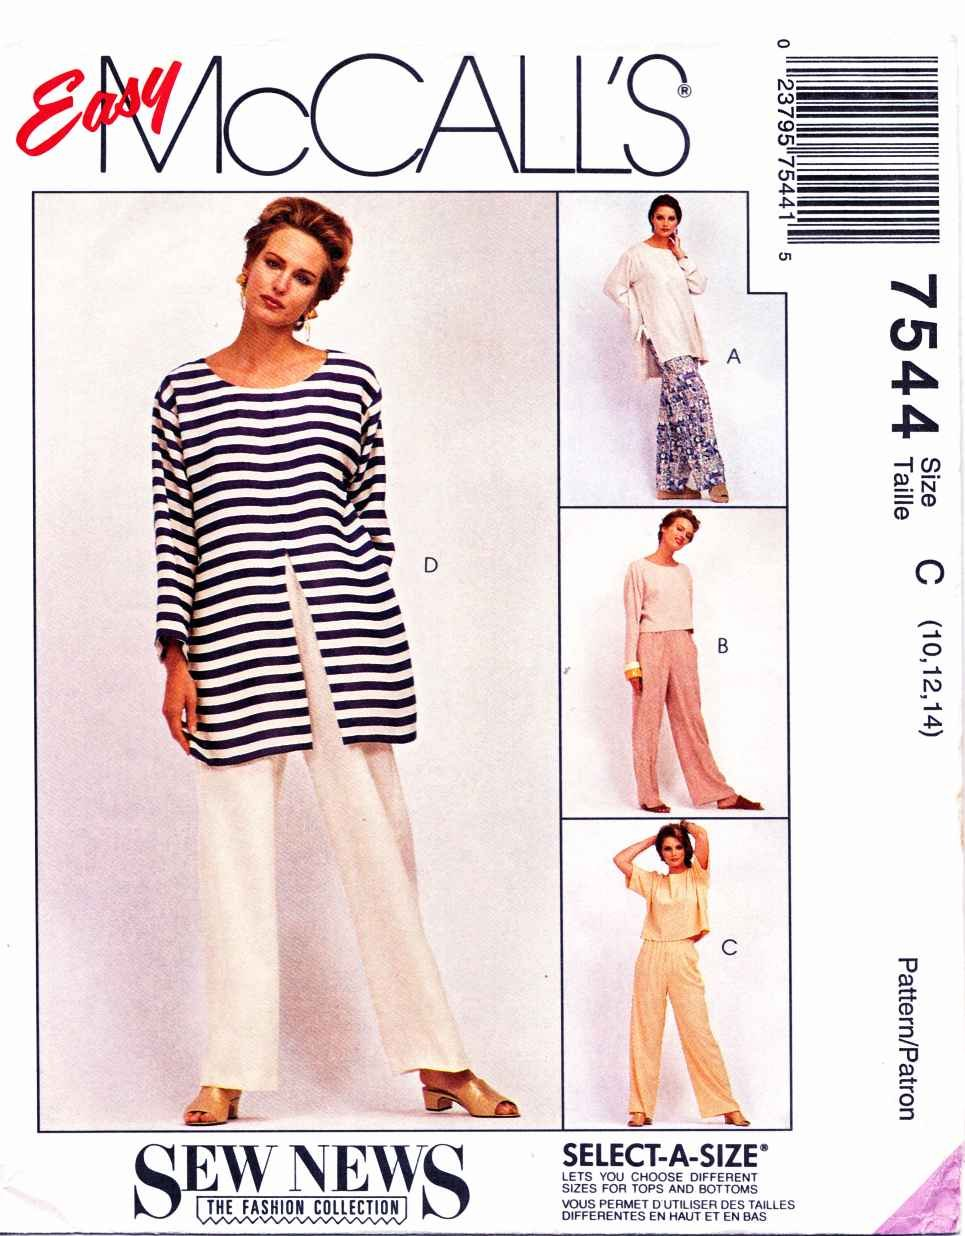 McCalls Sewing Pattern 7544 M7544 Misses Size 12-16 Easy Sew News Wardrobe Tunic Top Pants